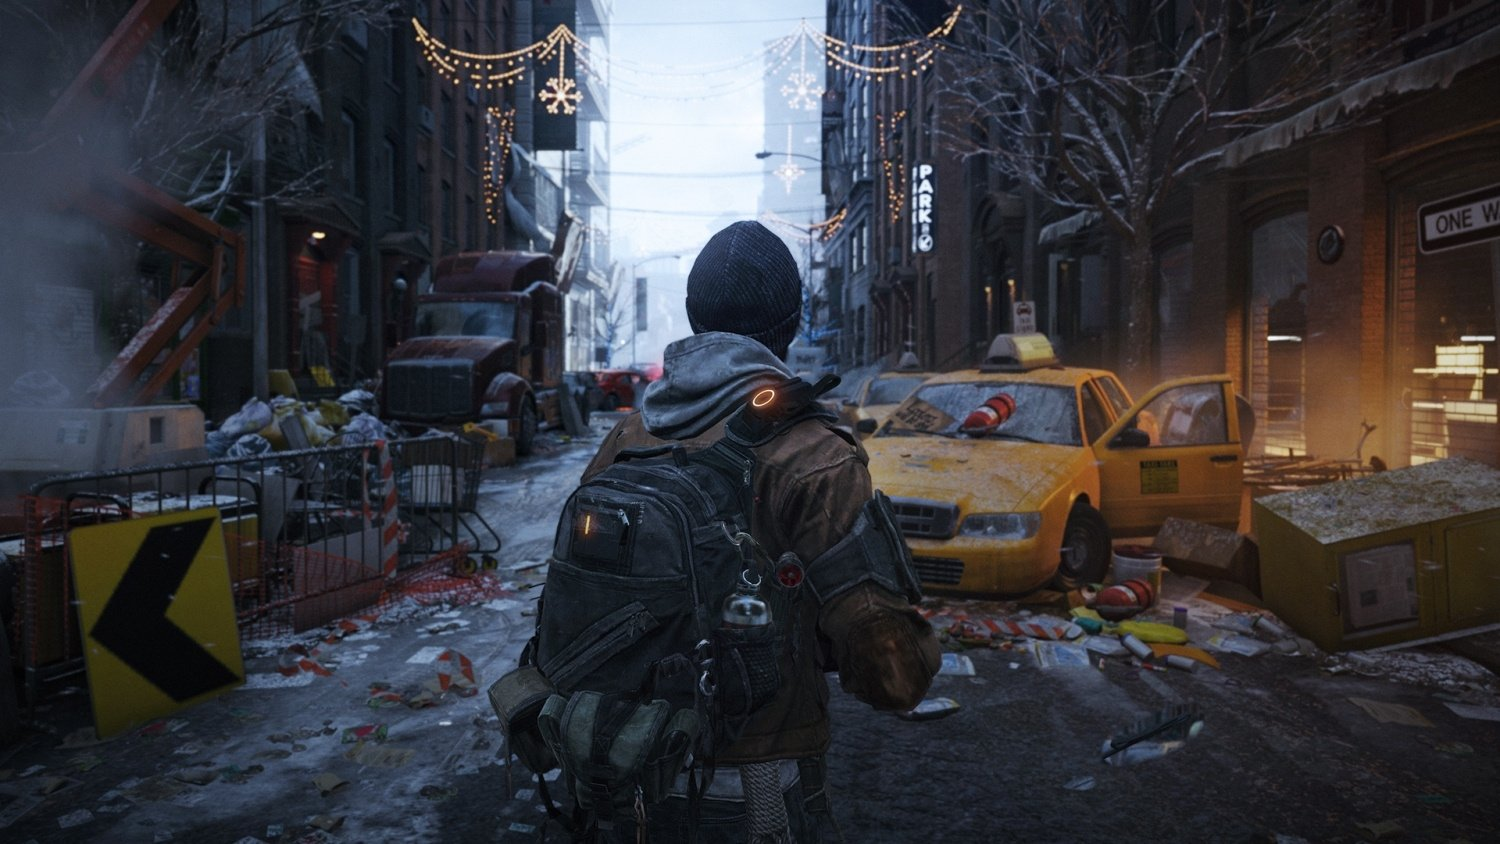 tom clancy 39 s the division hints at what your ps4 can do push square. Black Bedroom Furniture Sets. Home Design Ideas